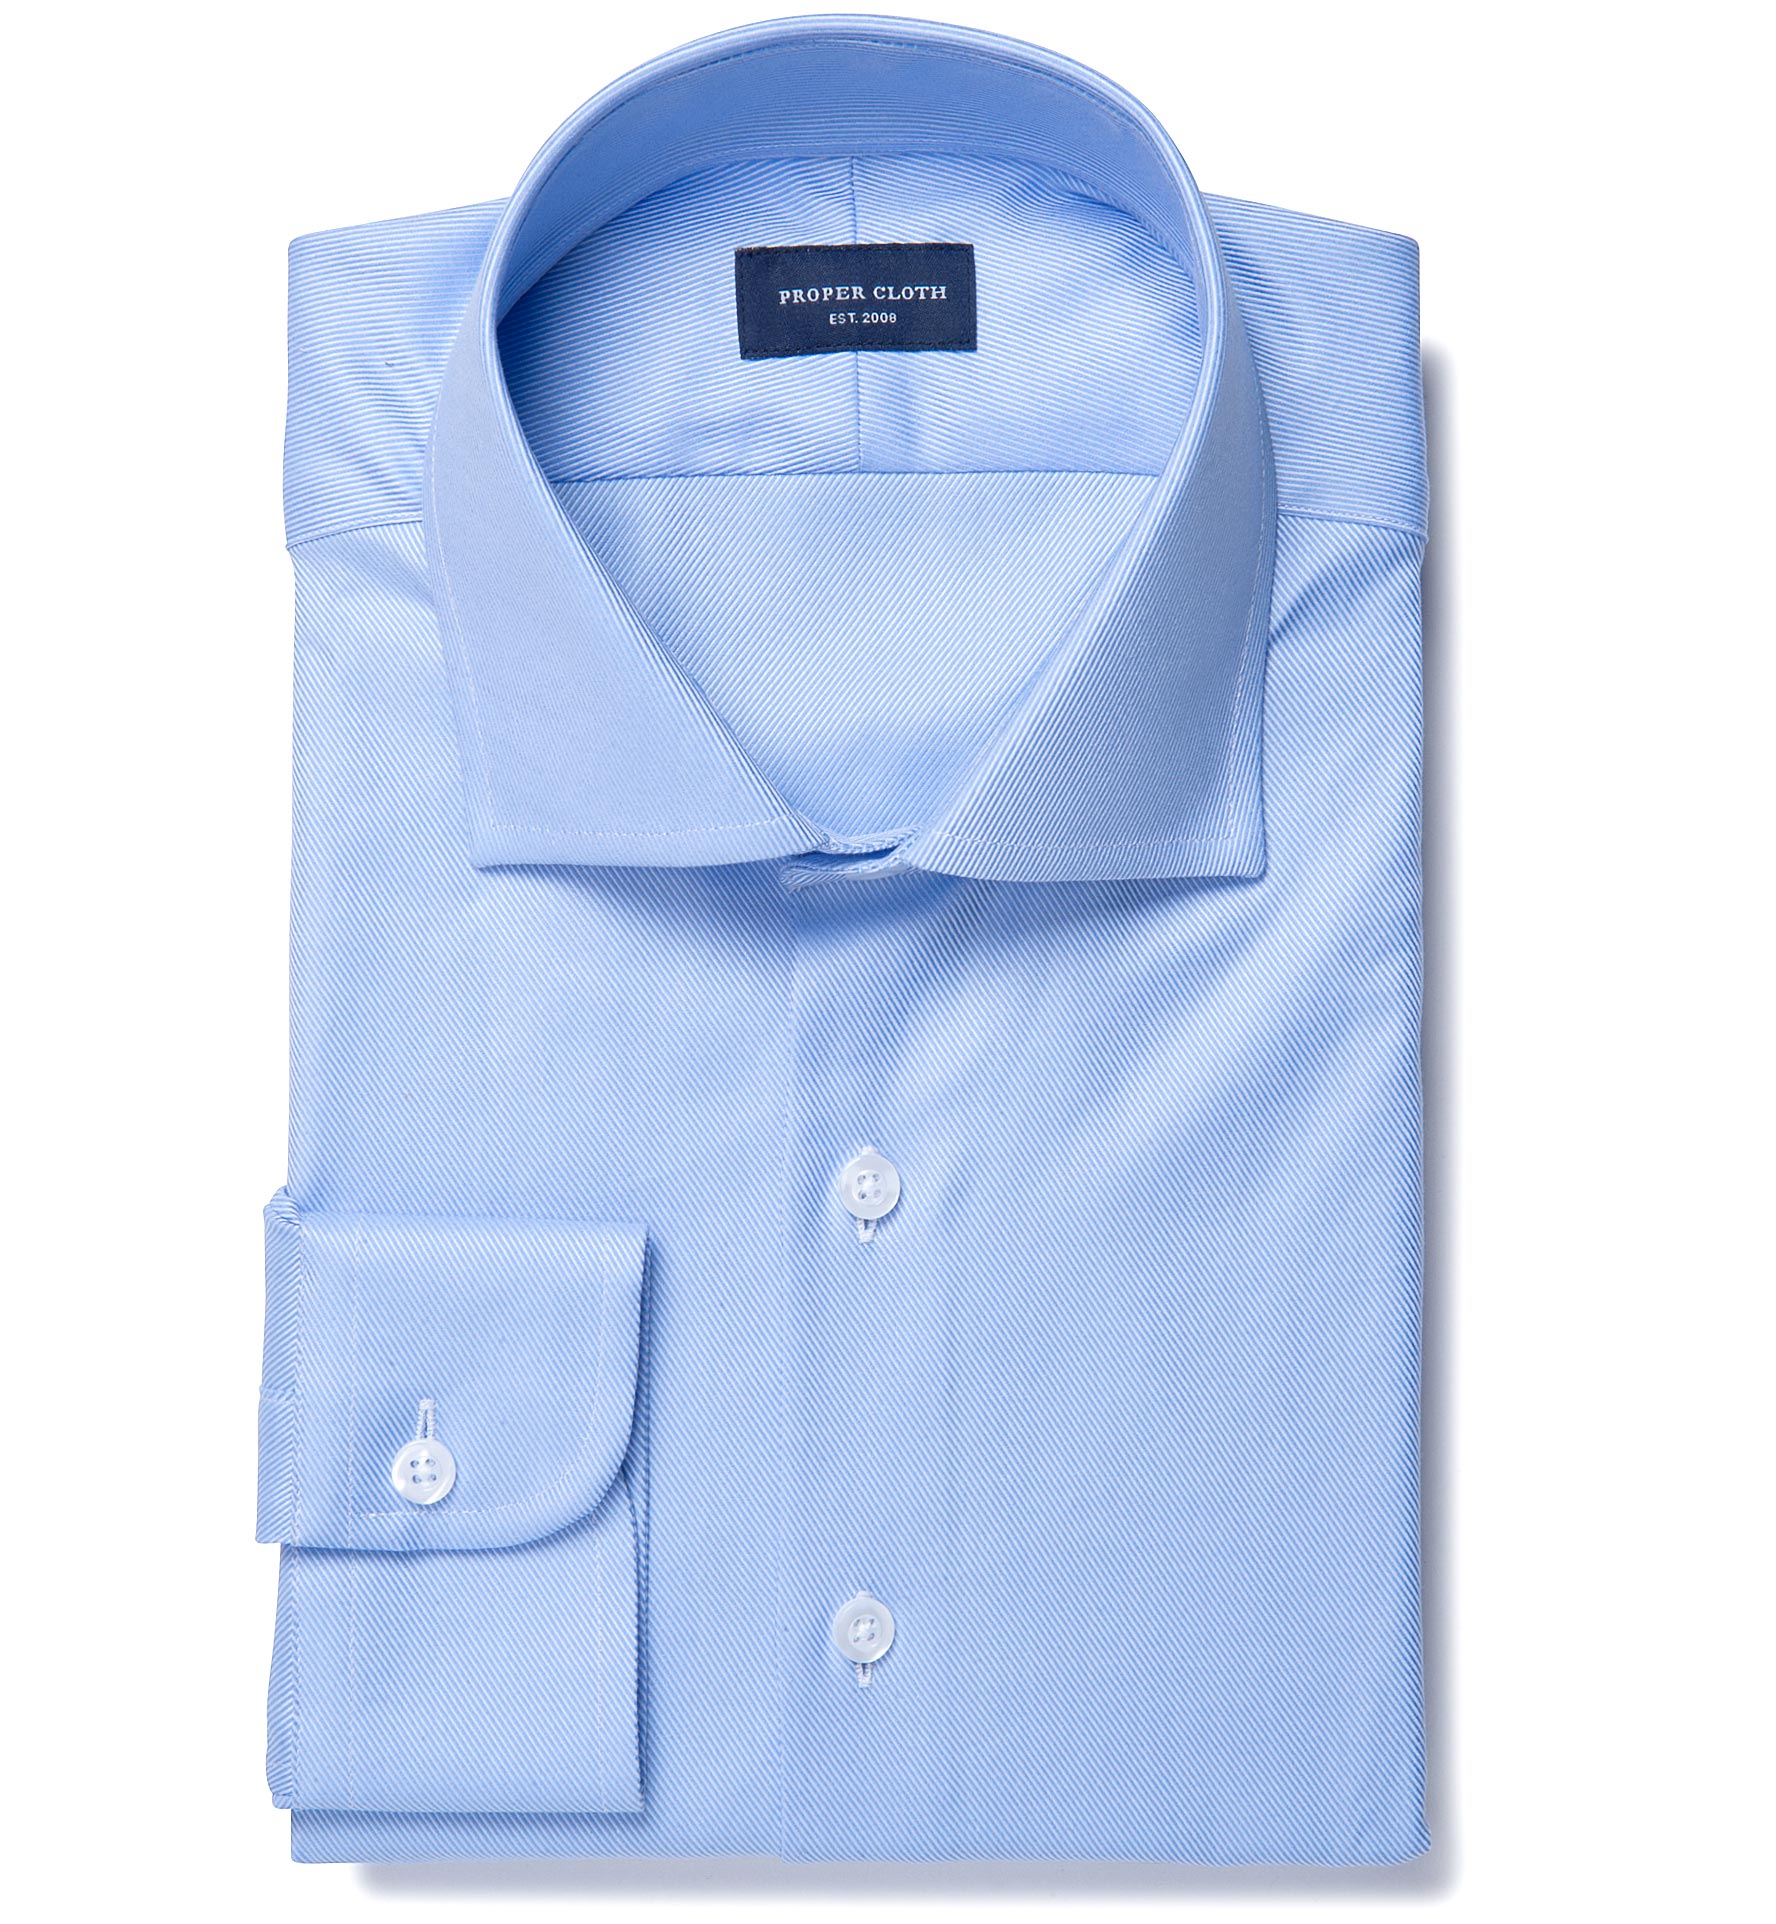 Sky blue wrinkle resistant cavalry twill custom made shirt for Wrinkle resistant dress shirts